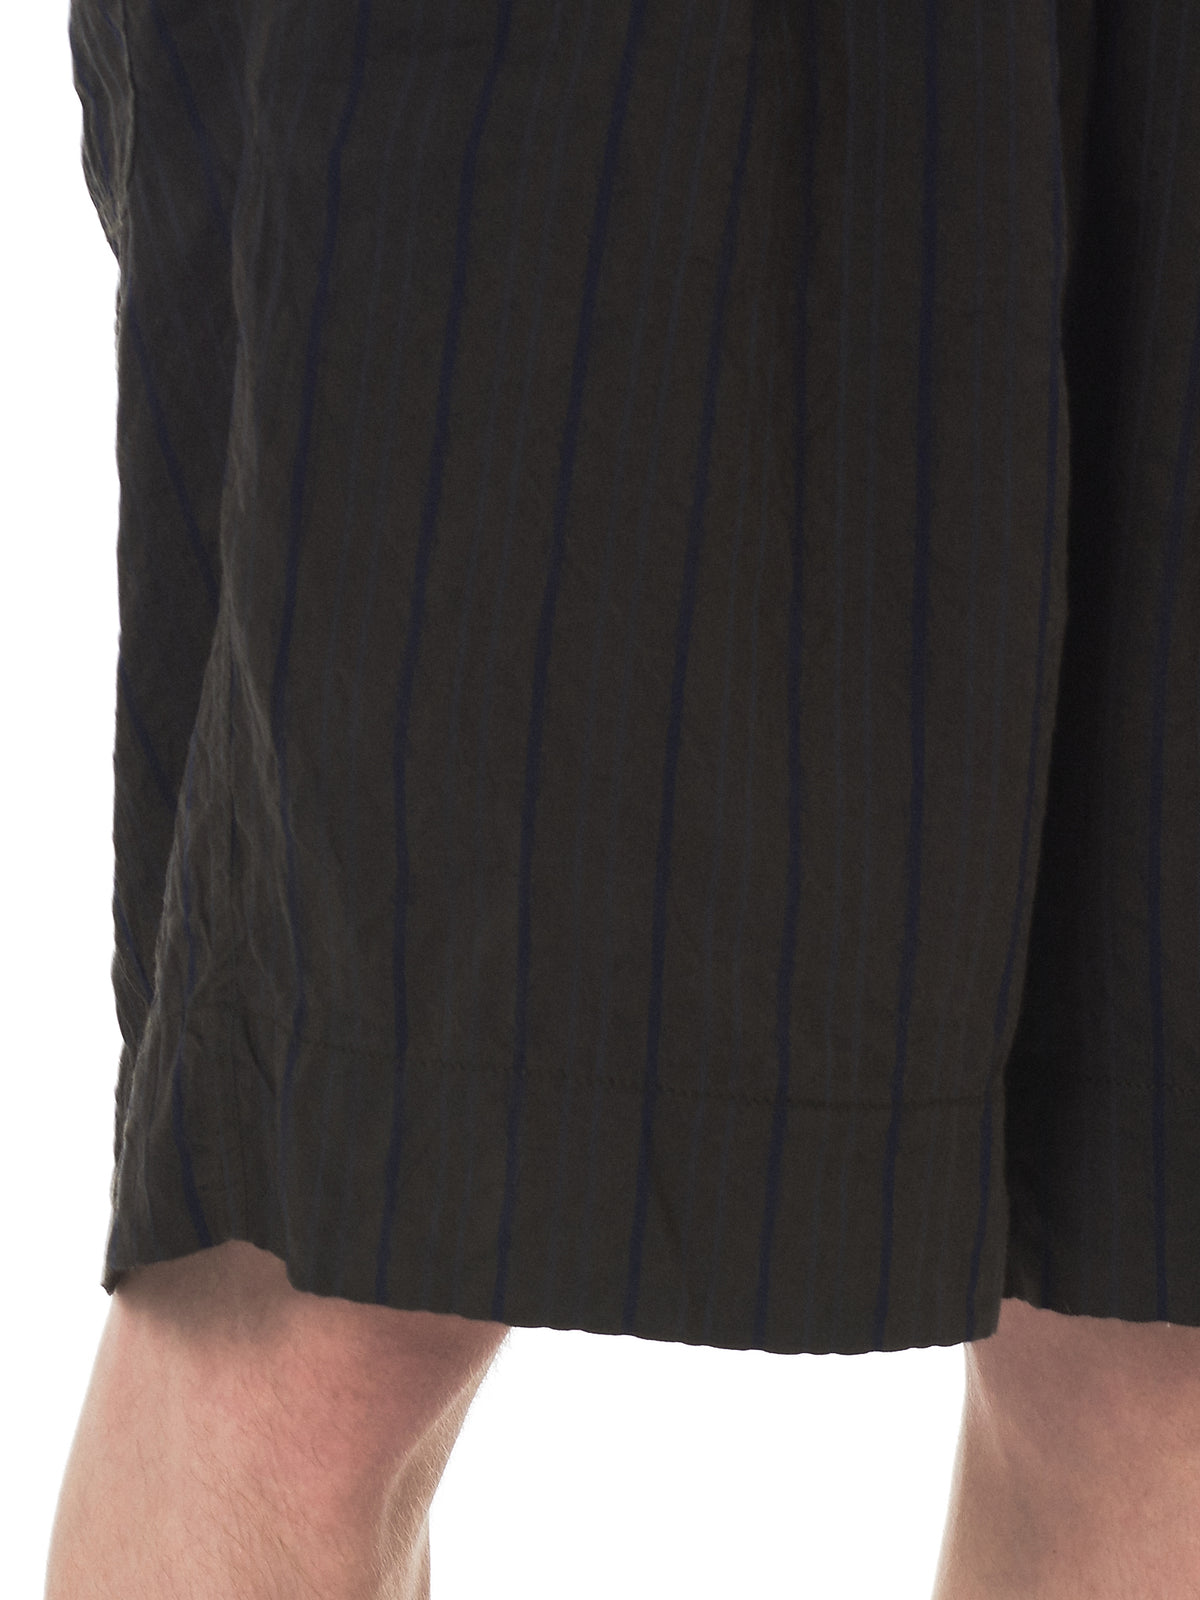 Ziggy Chen Striped Shorts - Hlorenzo Detail 2